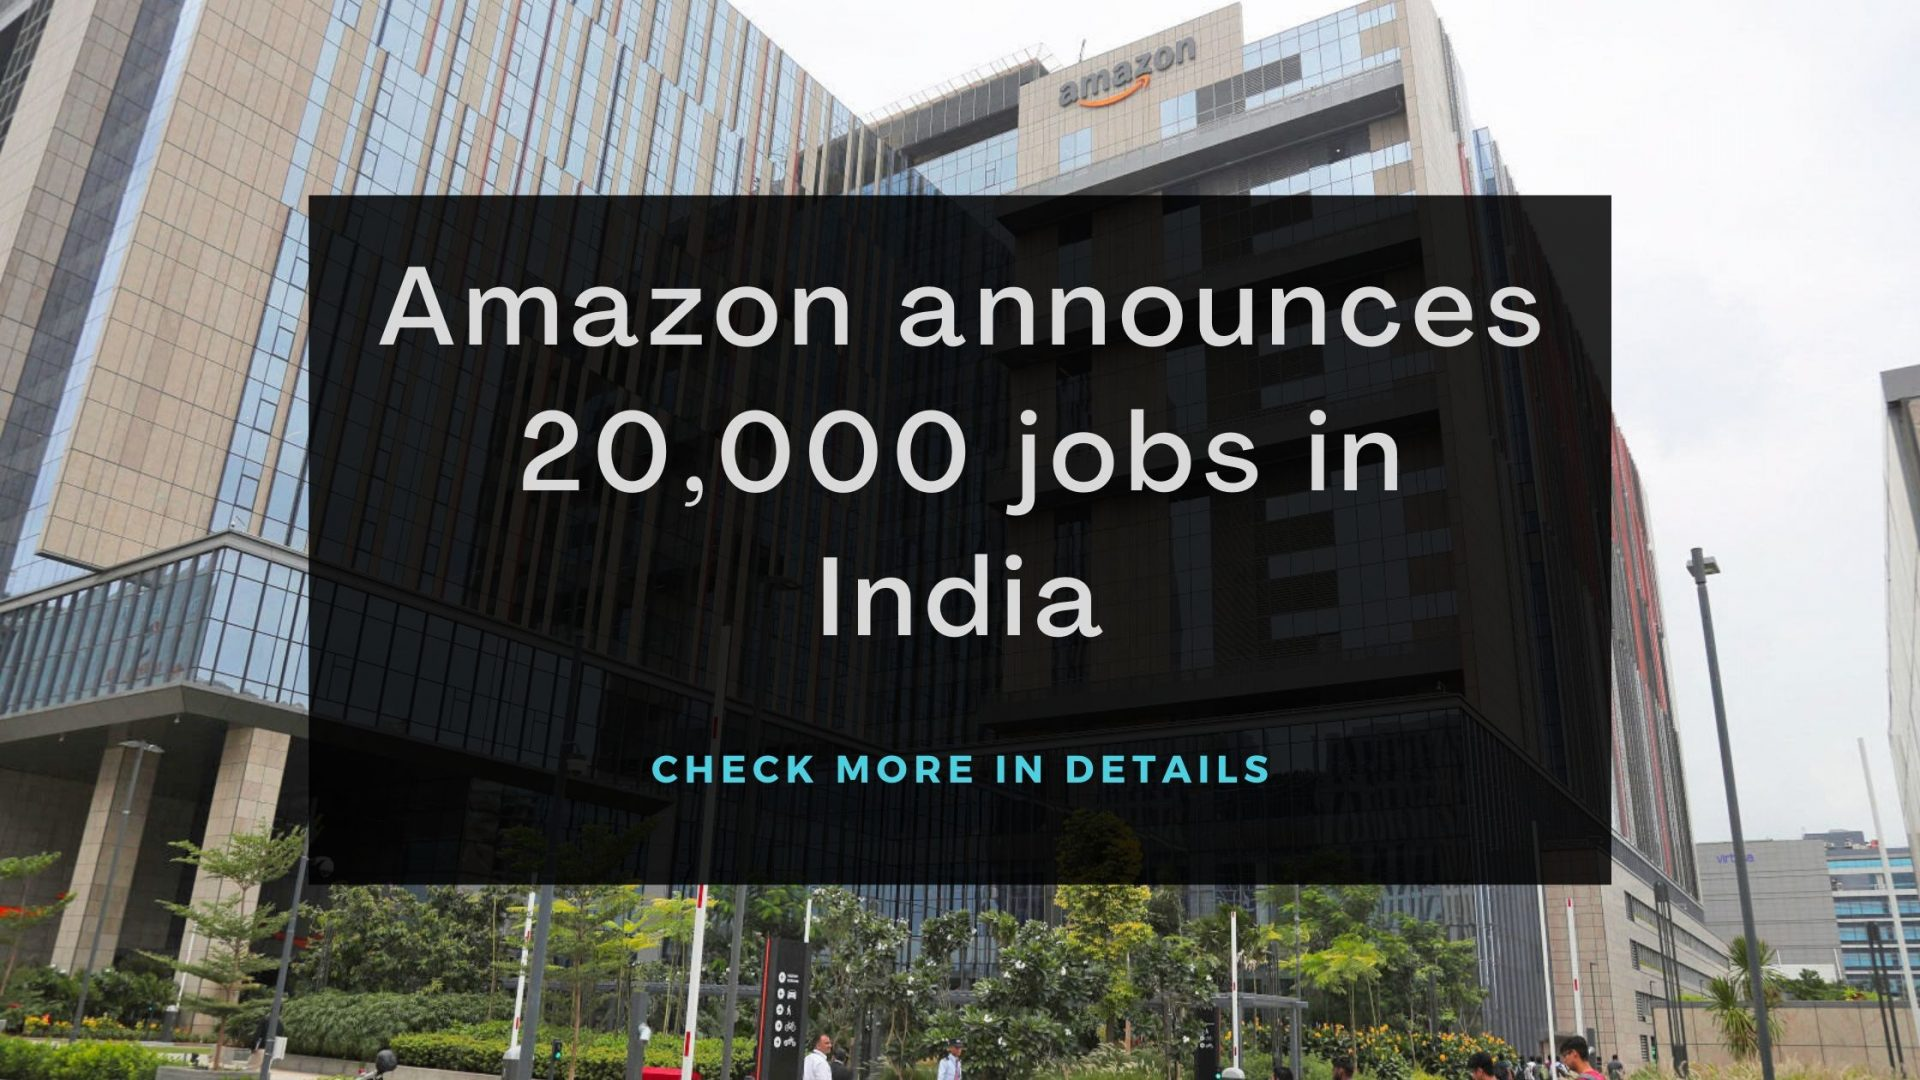 Amazon announces 20,000 jobs in India-thedigiweb